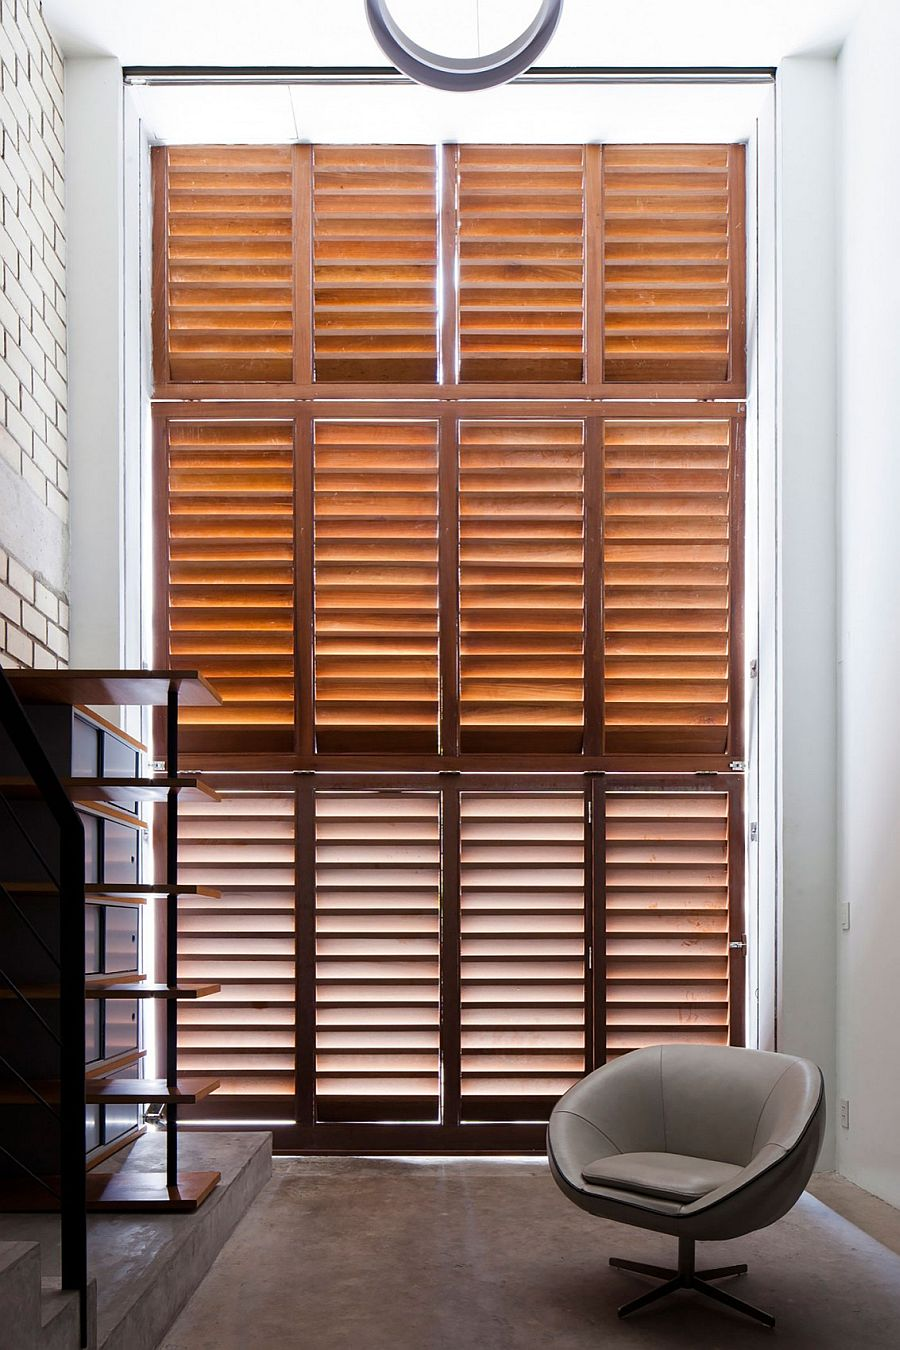 View of the shutters from the inside of the home